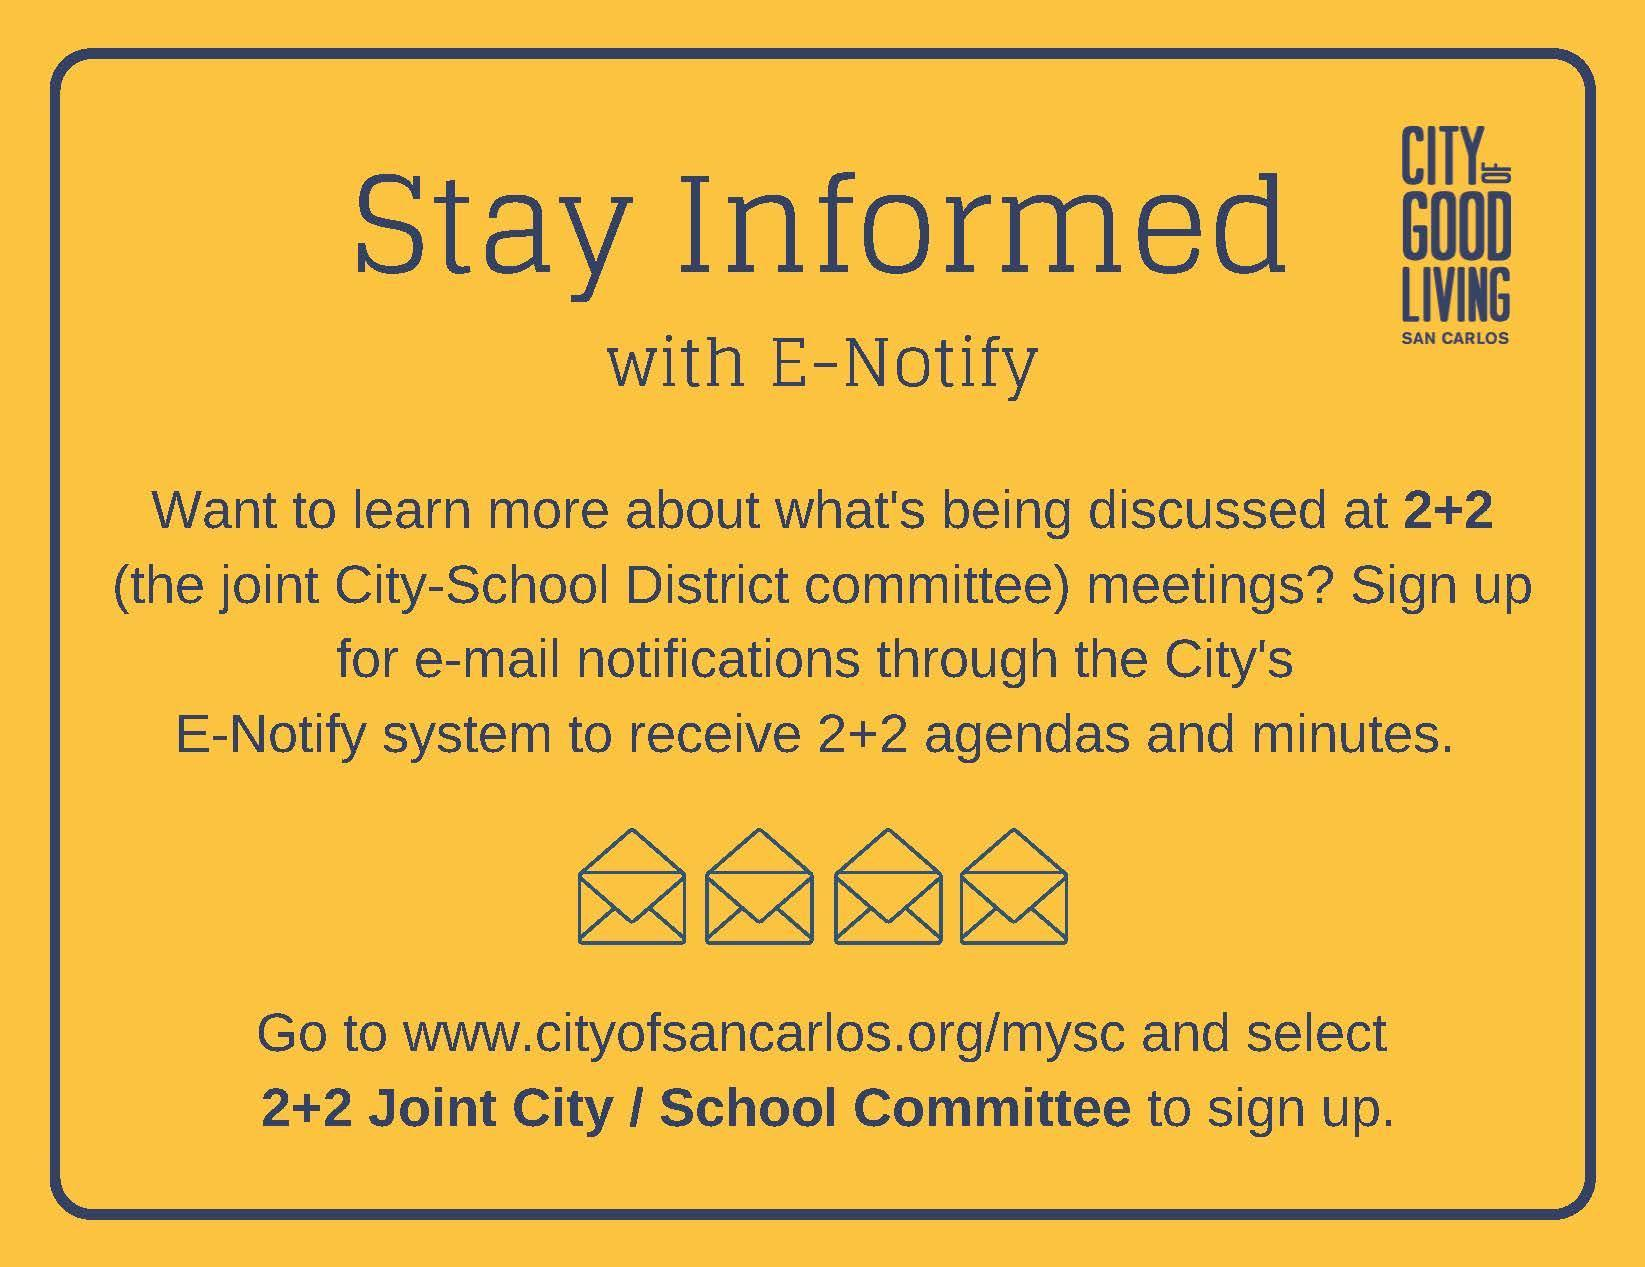 2+2 Joint City School Committee